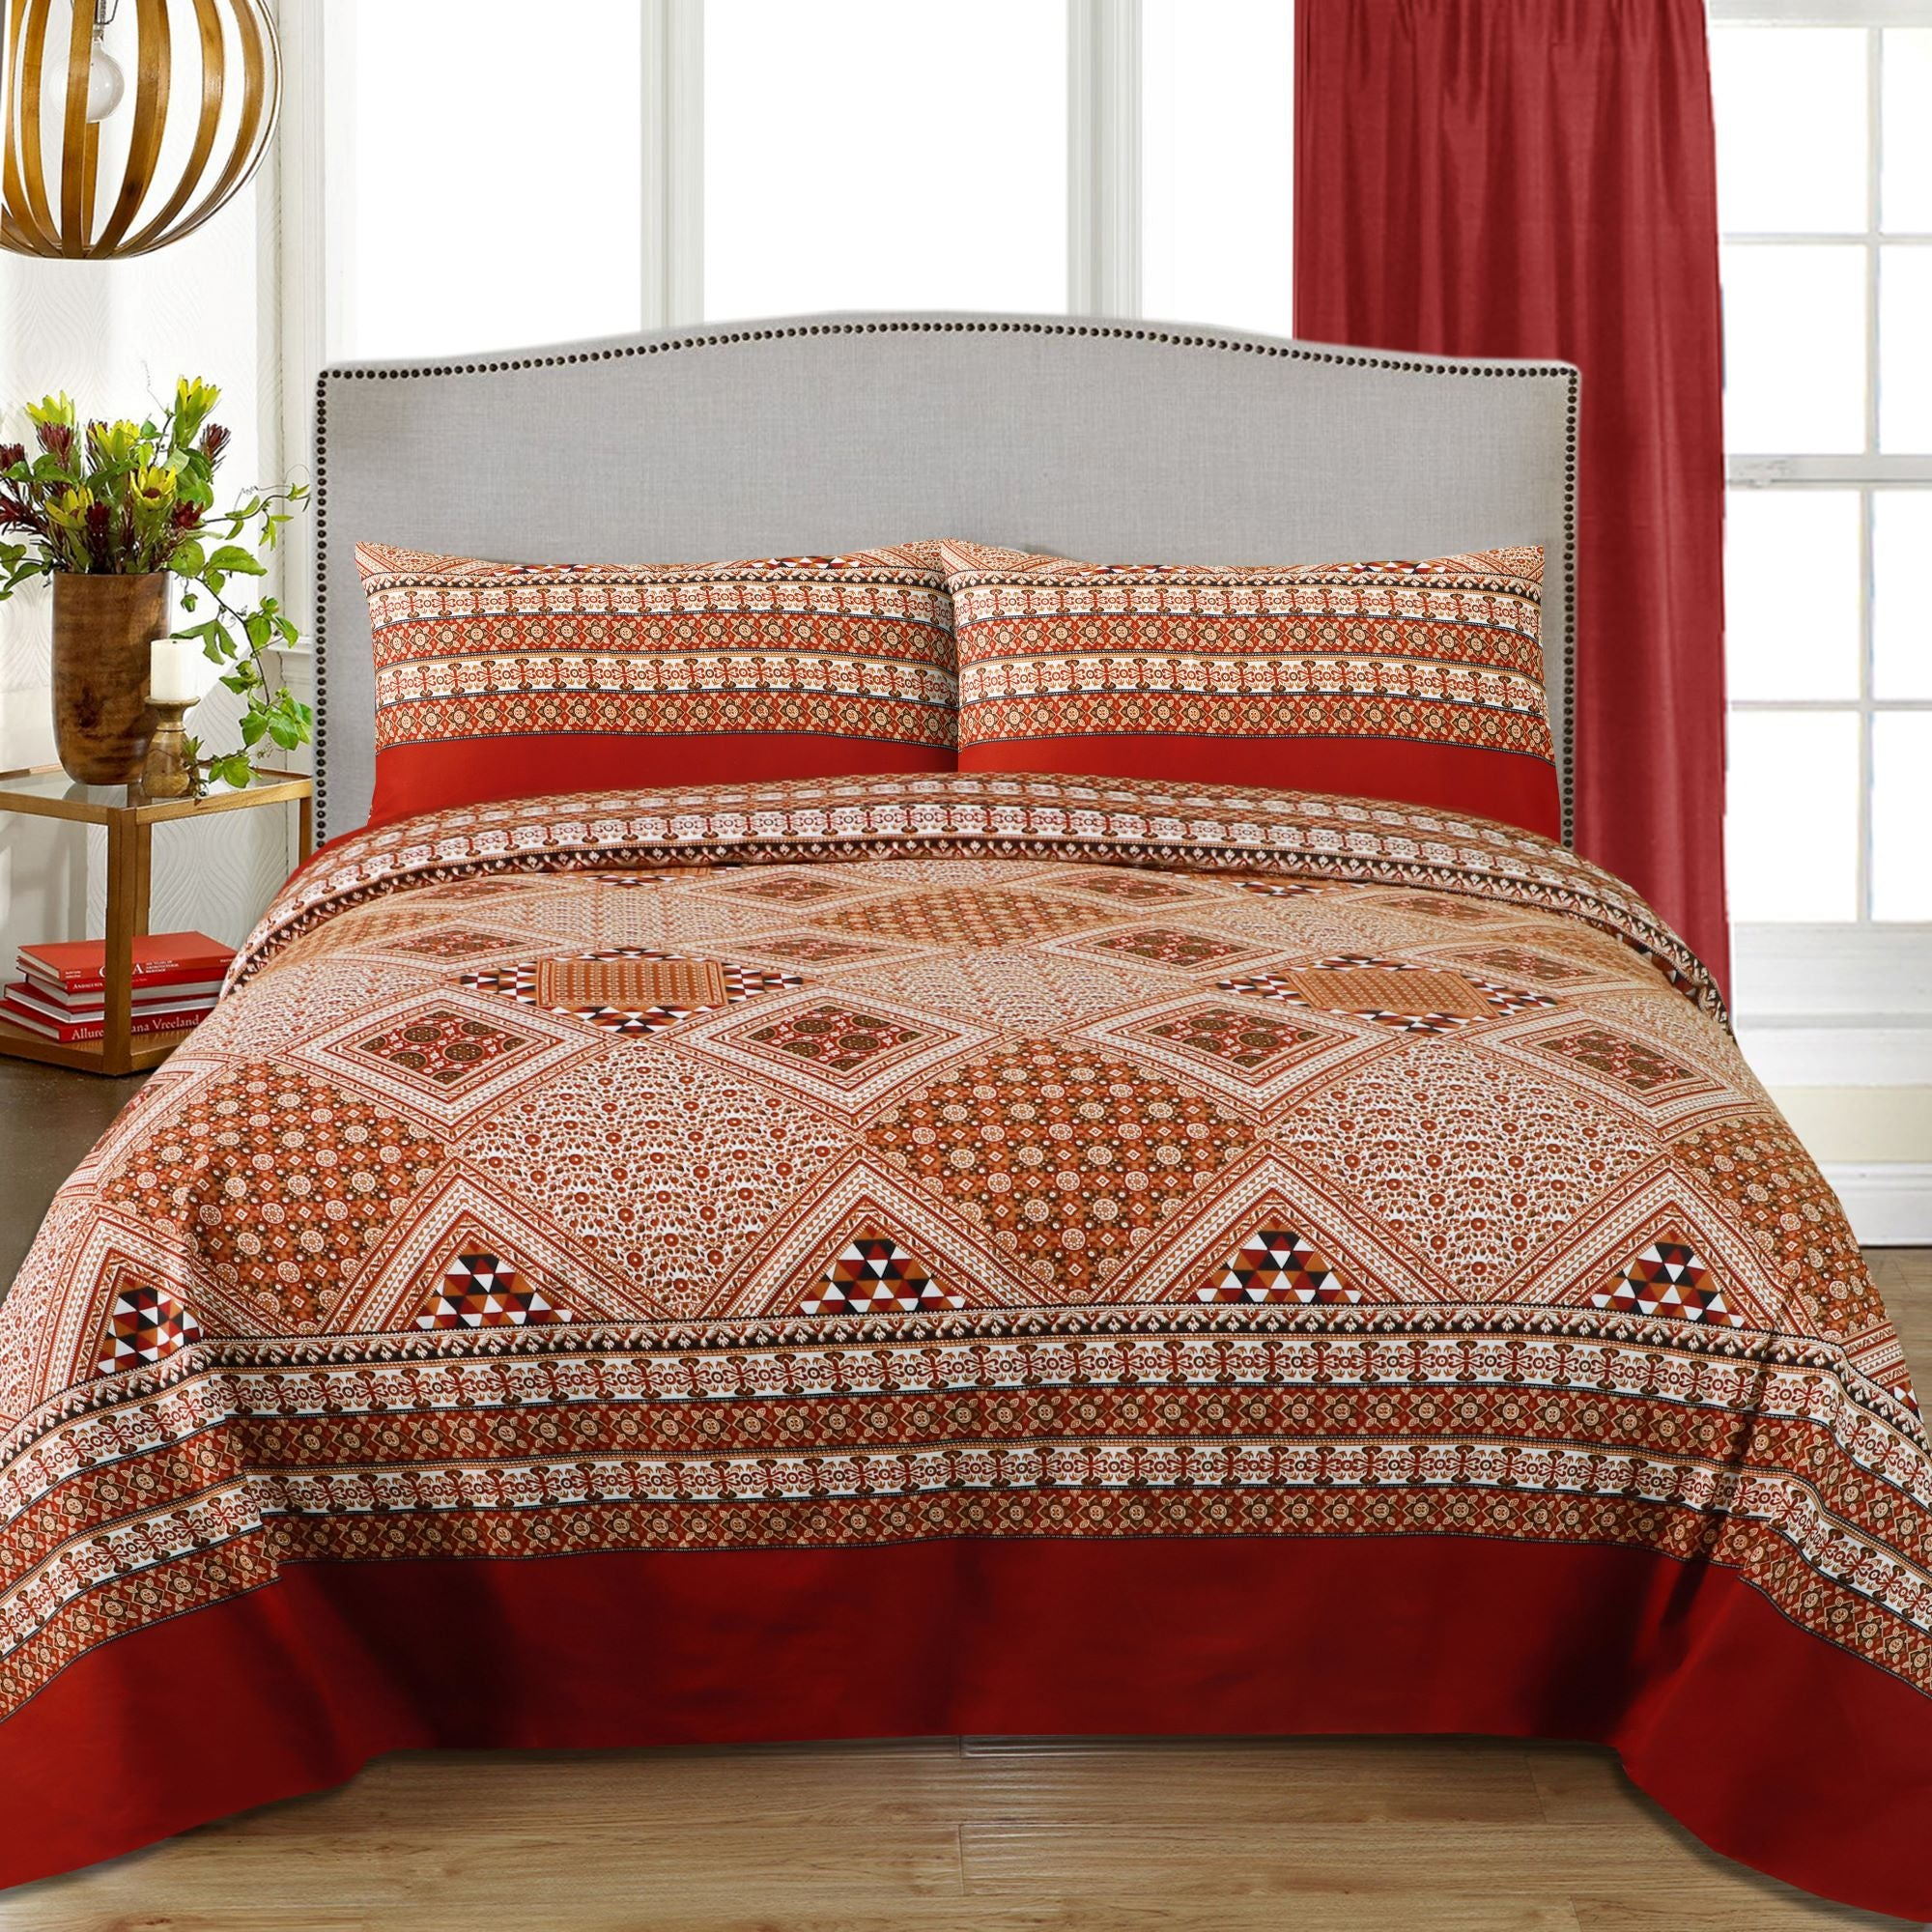 Aplic Traditional Cotton Bed sheet